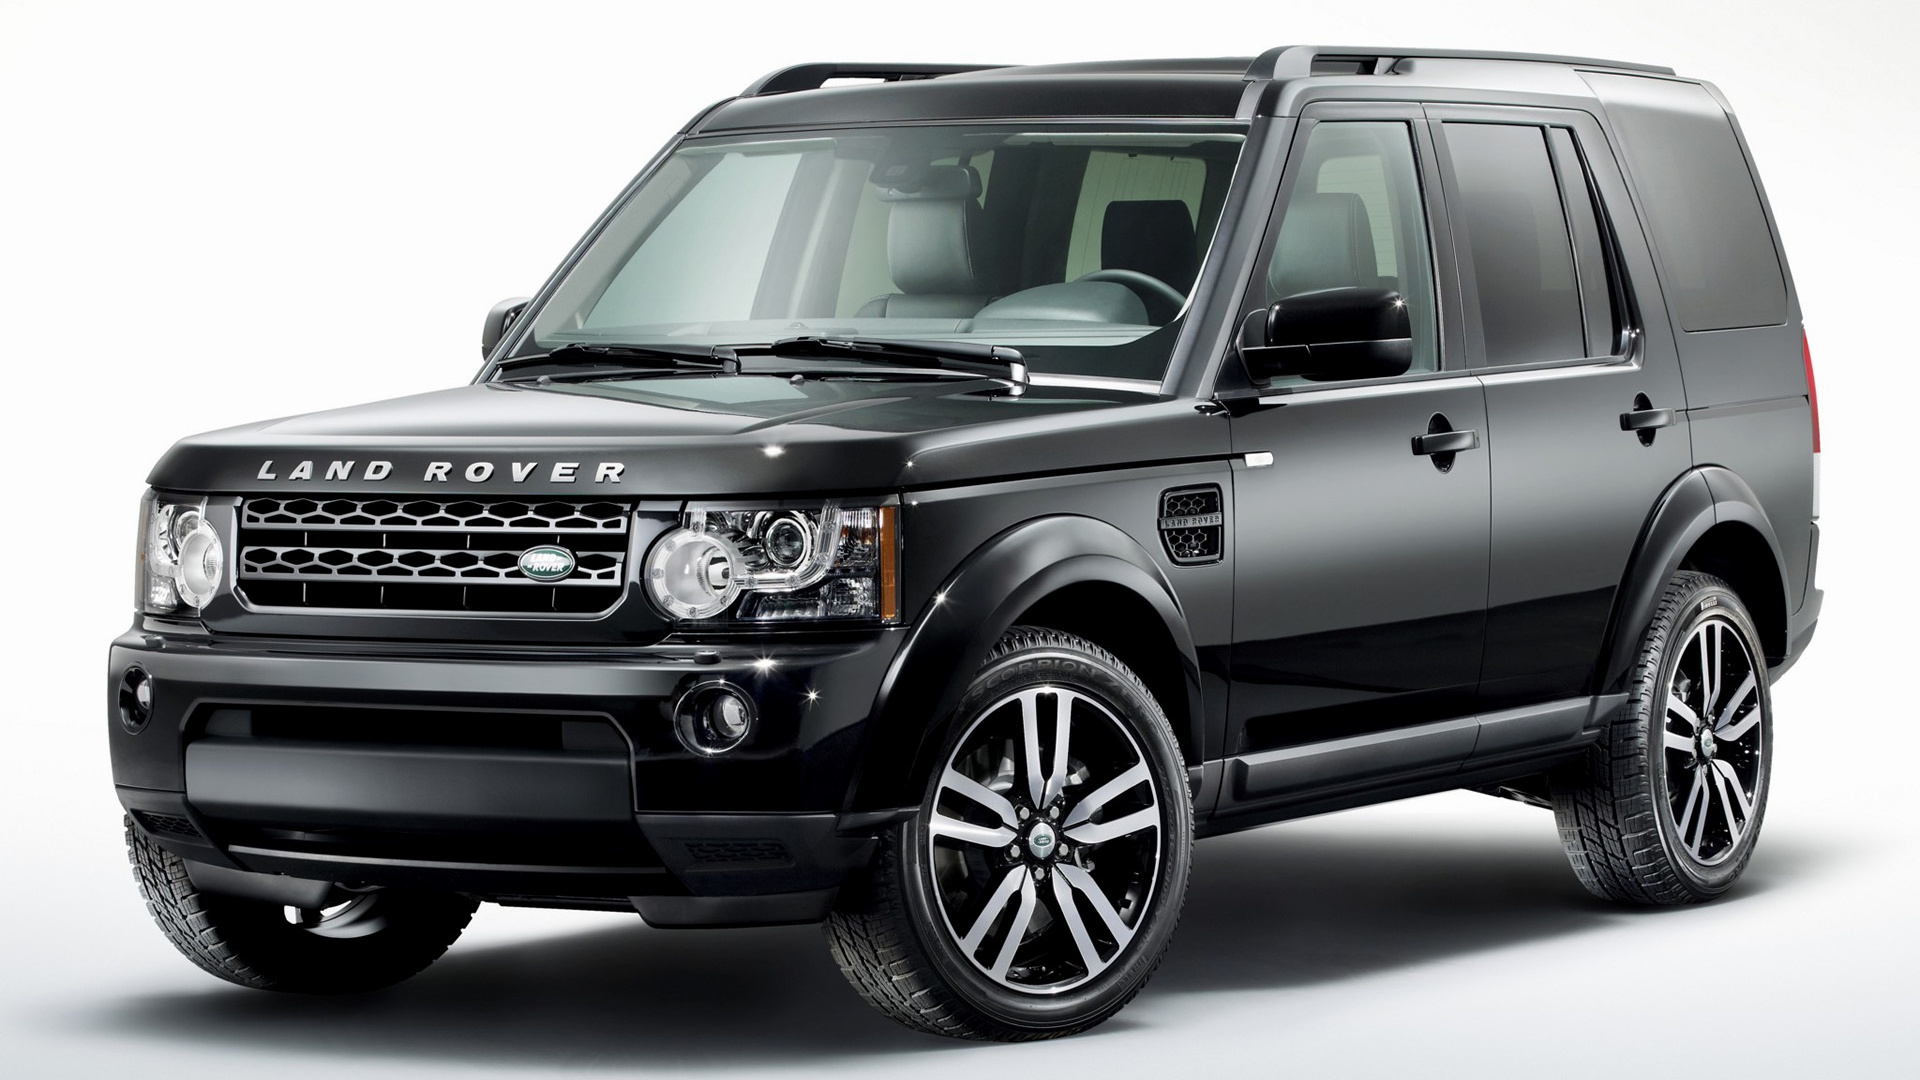 Land Rover Discovery 4 Landmark 2011 Wallpapers And Hd